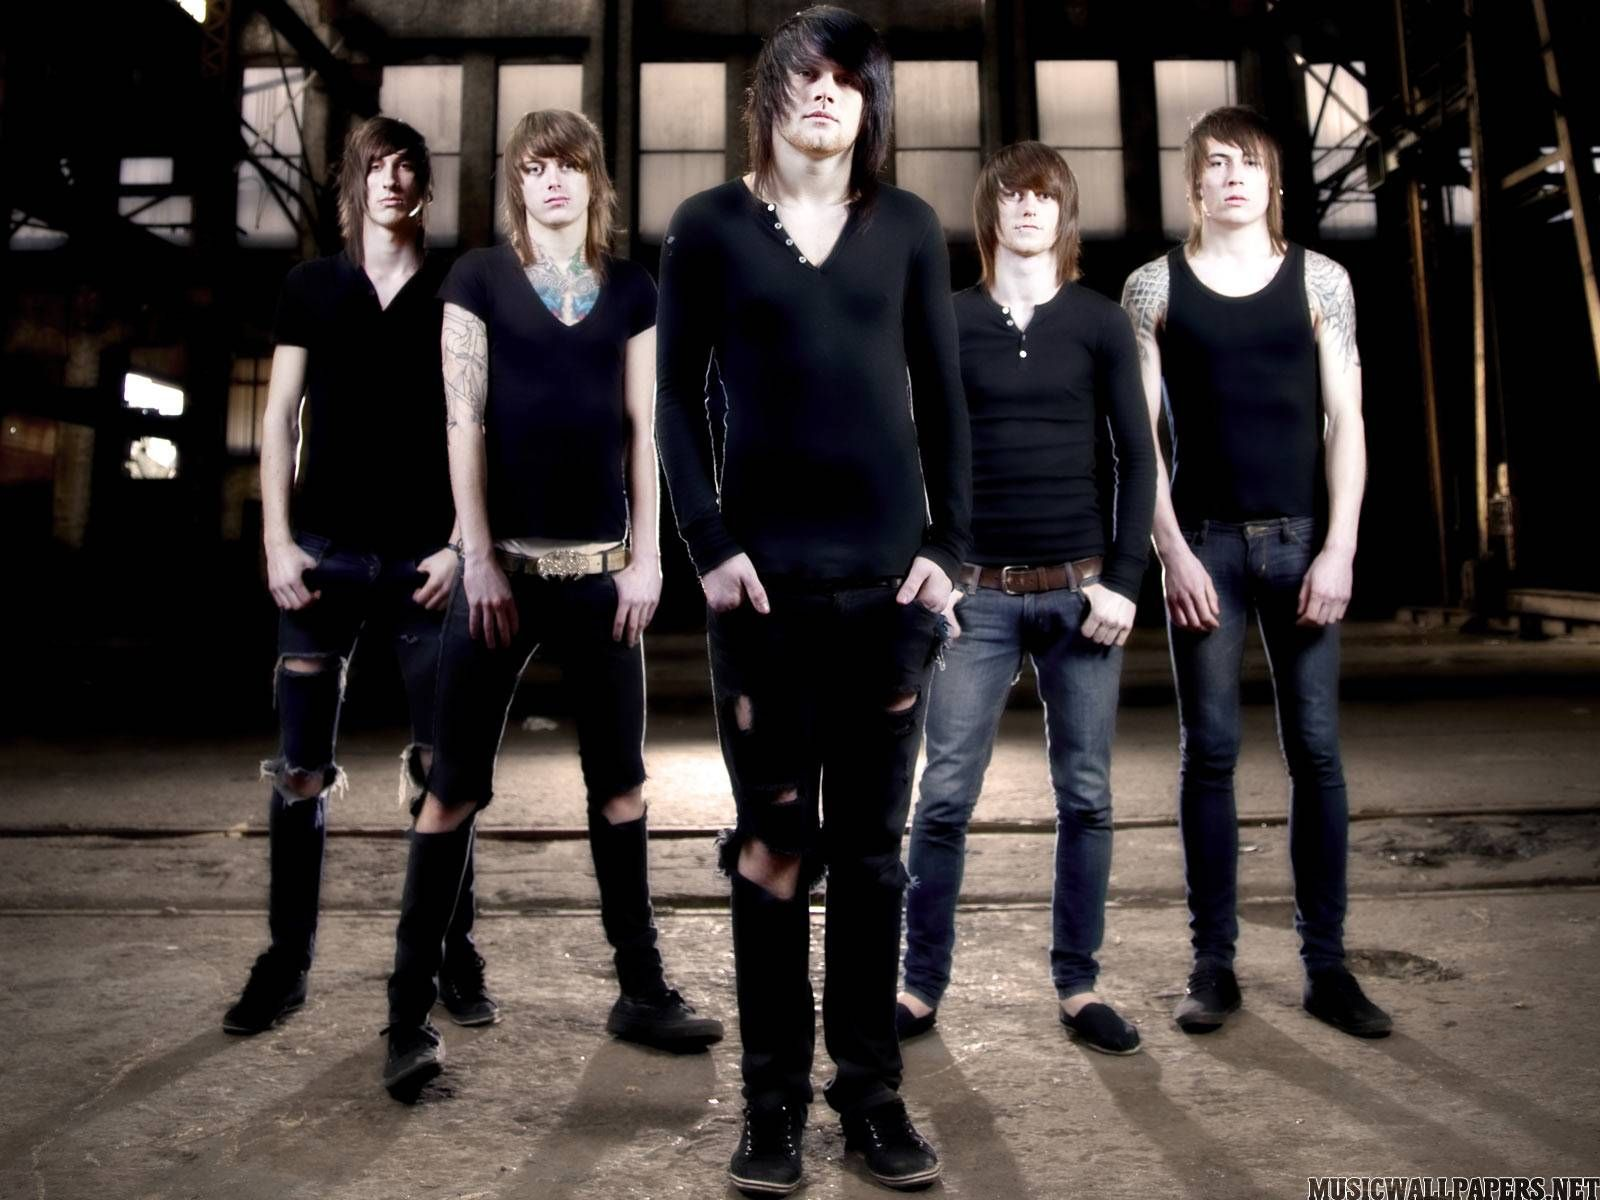 Must see Wallpaper Music Screamo - 9d92f7af75cb439ac5e2d37ea477912b  Pictures_307056.jpg